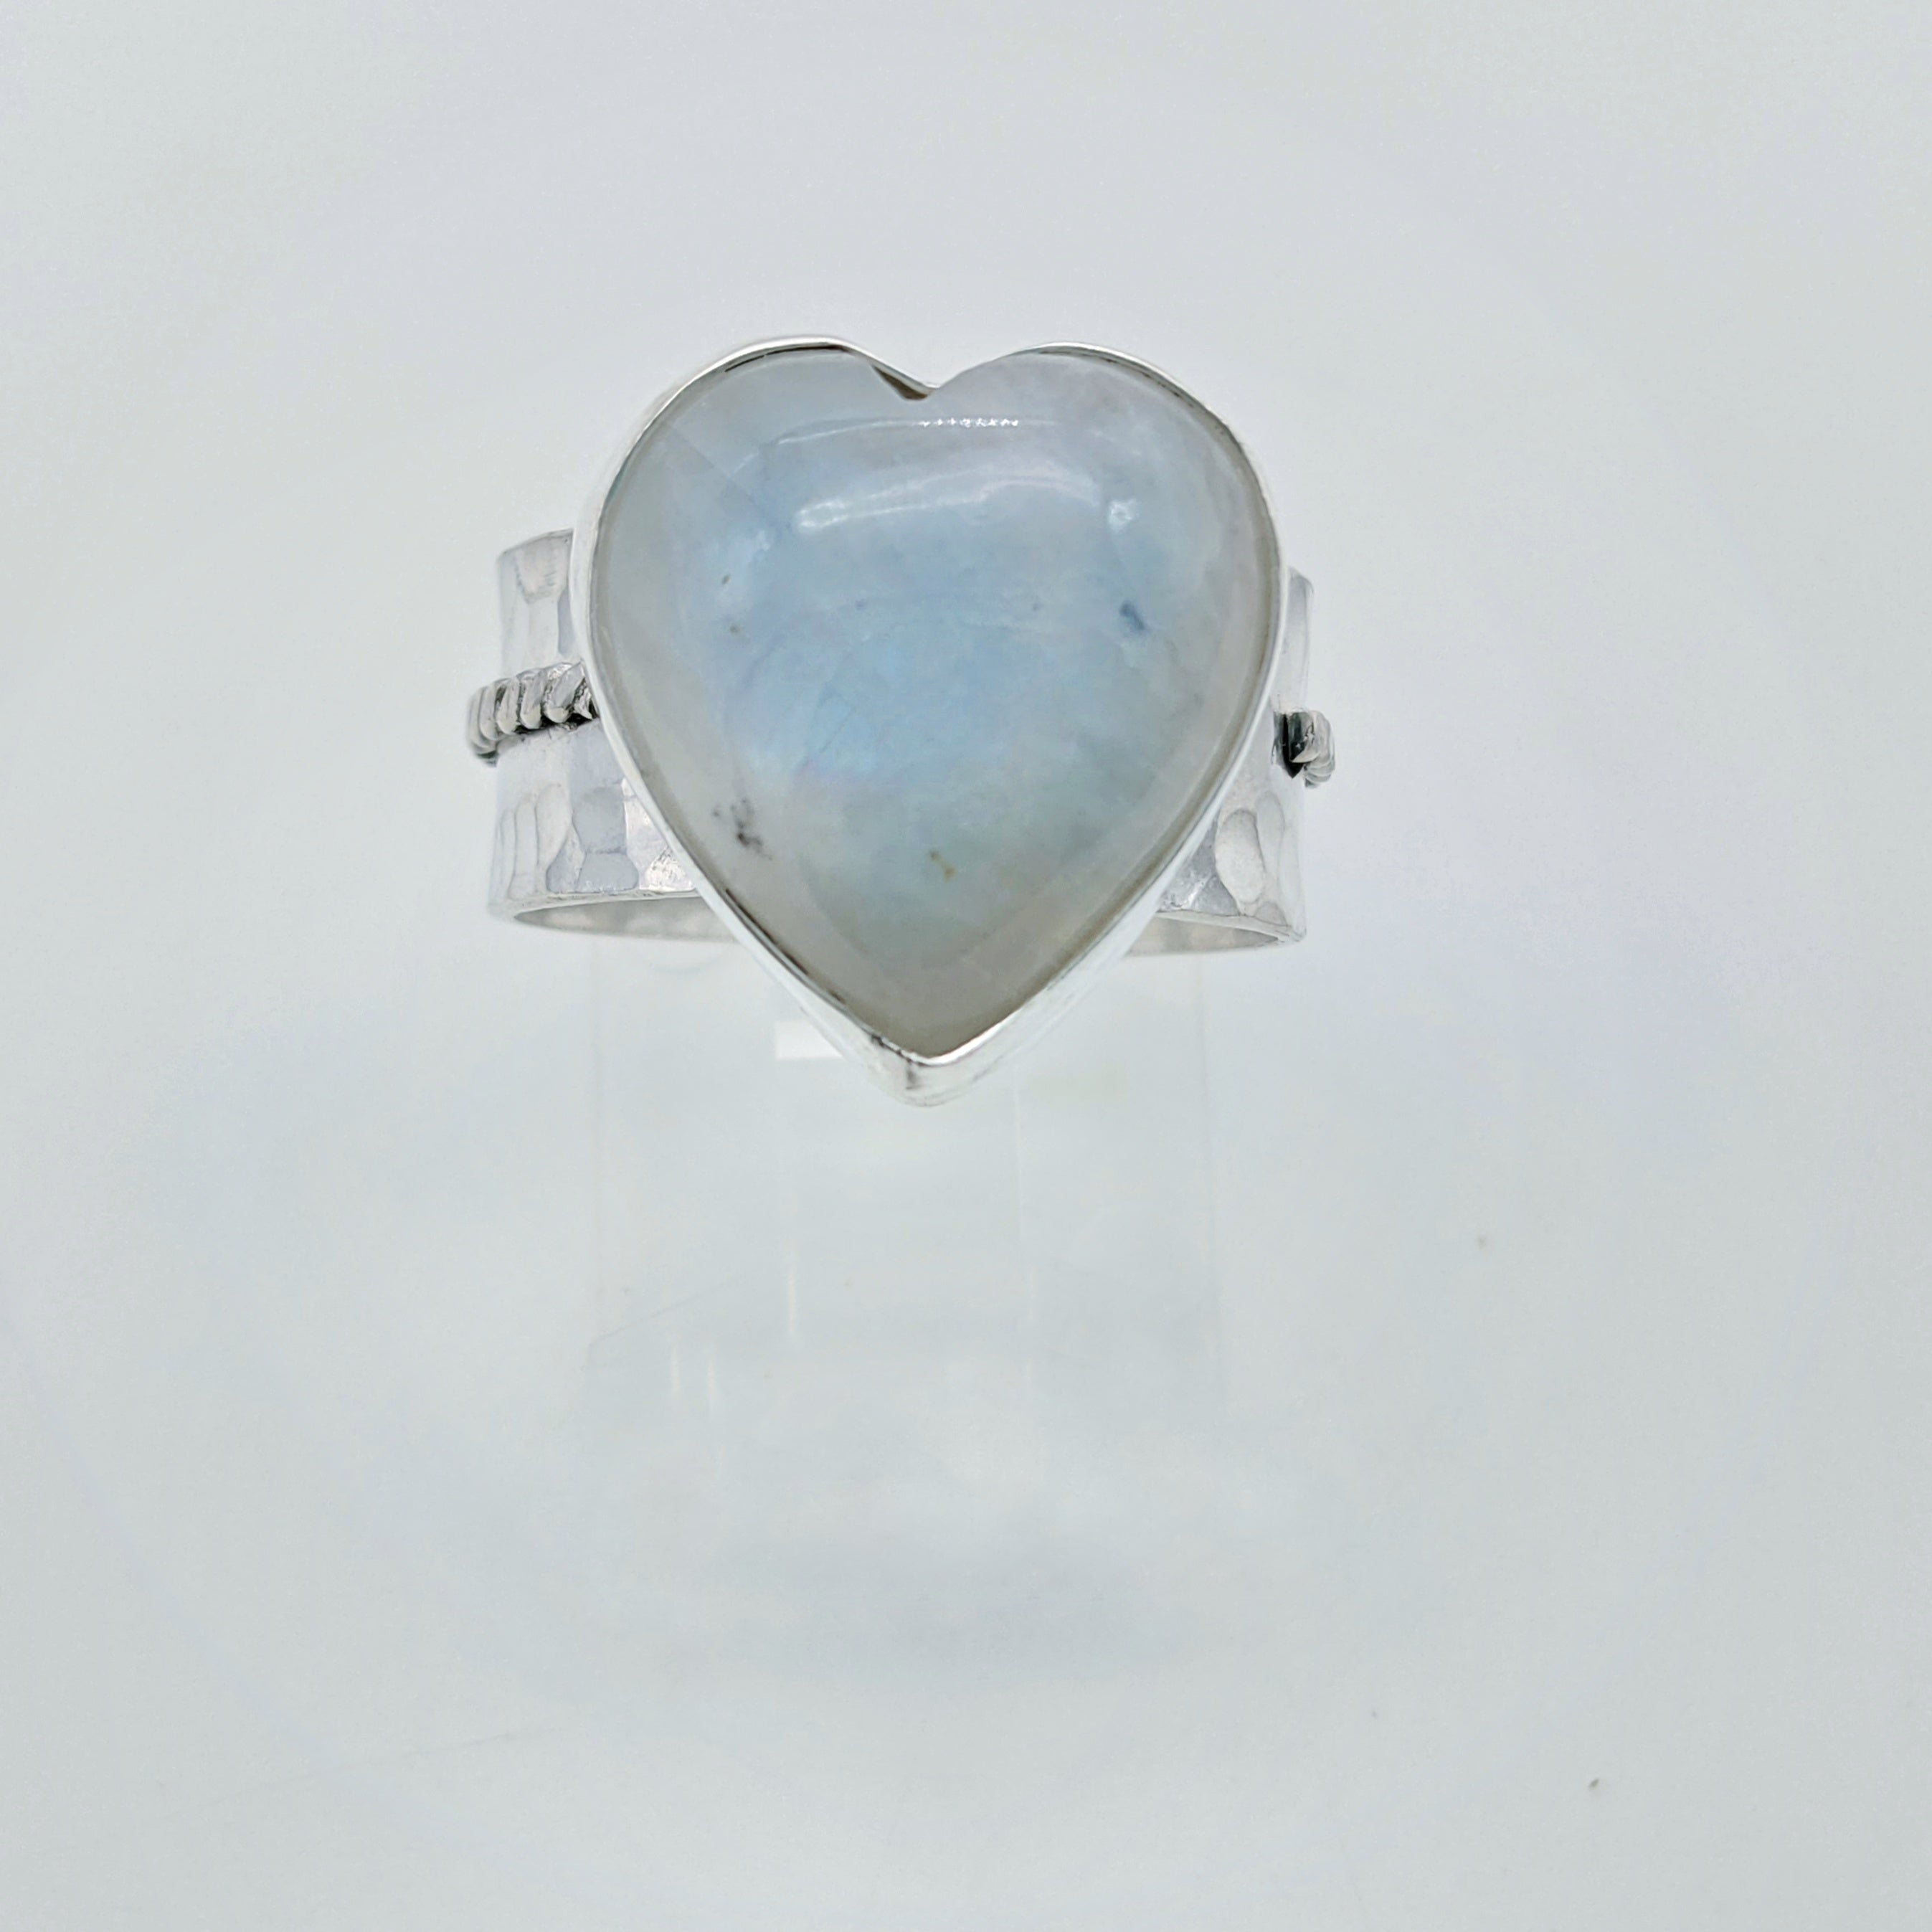 Moonstone Heart Ring in Sterling Silver - Wide Band Adjustable Gemstone Ring Sizes 6.5 to 8.5